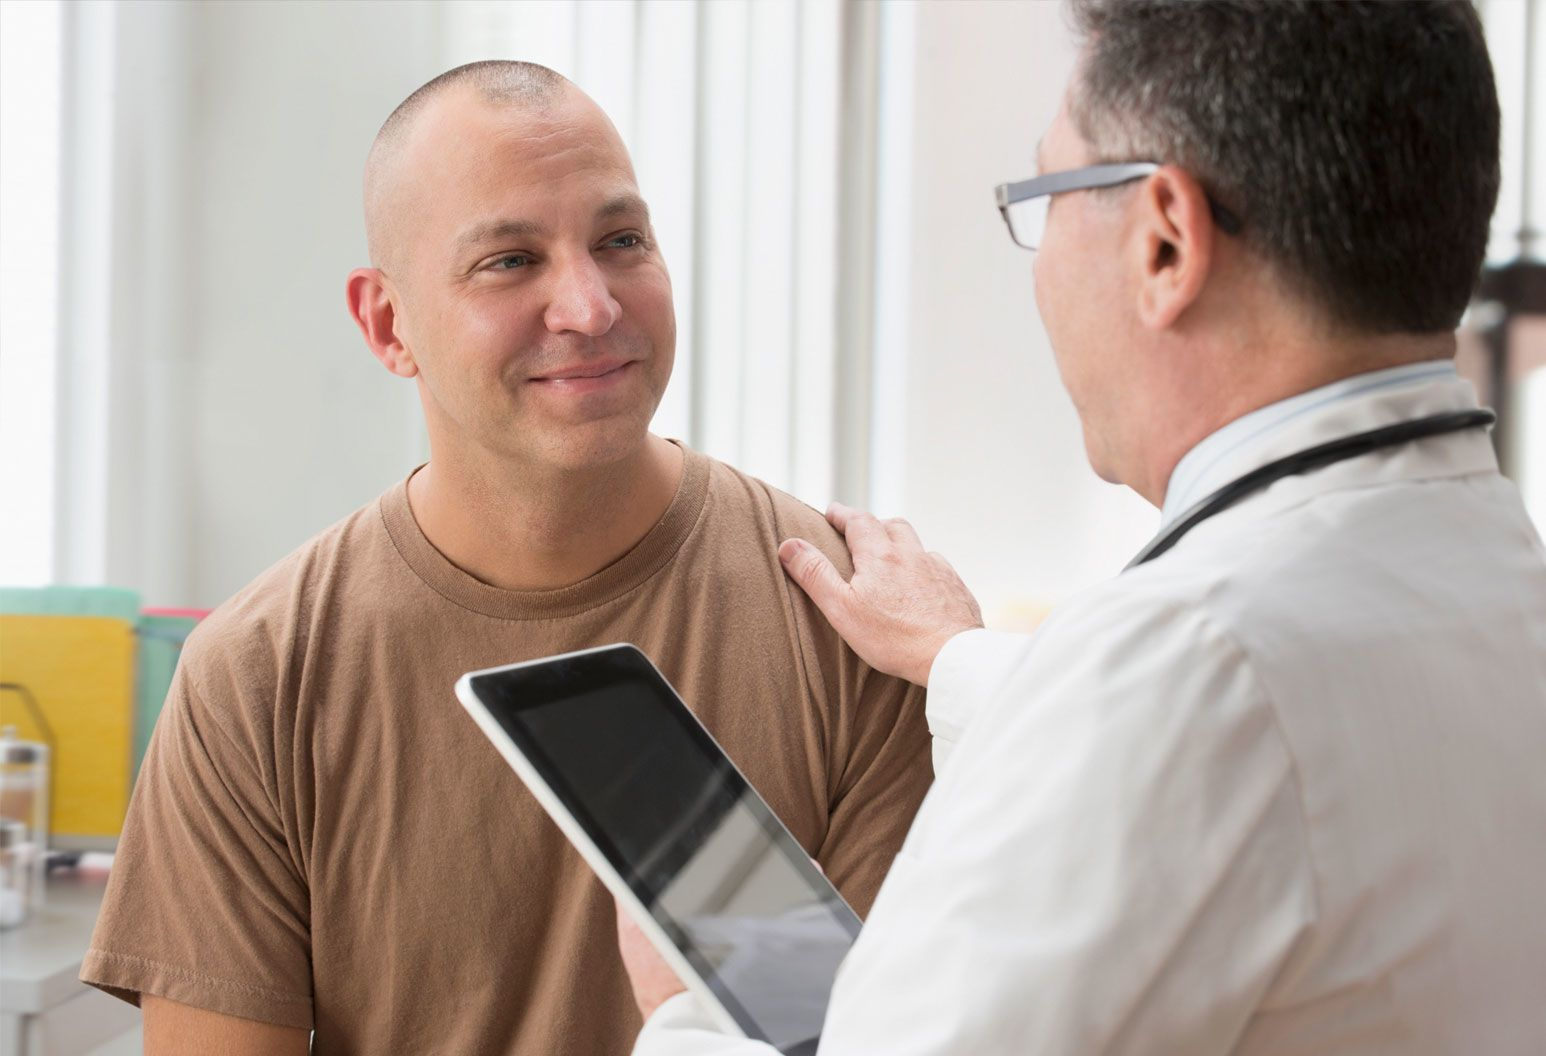 A male doctor rests his hand on a male patient's shoulder